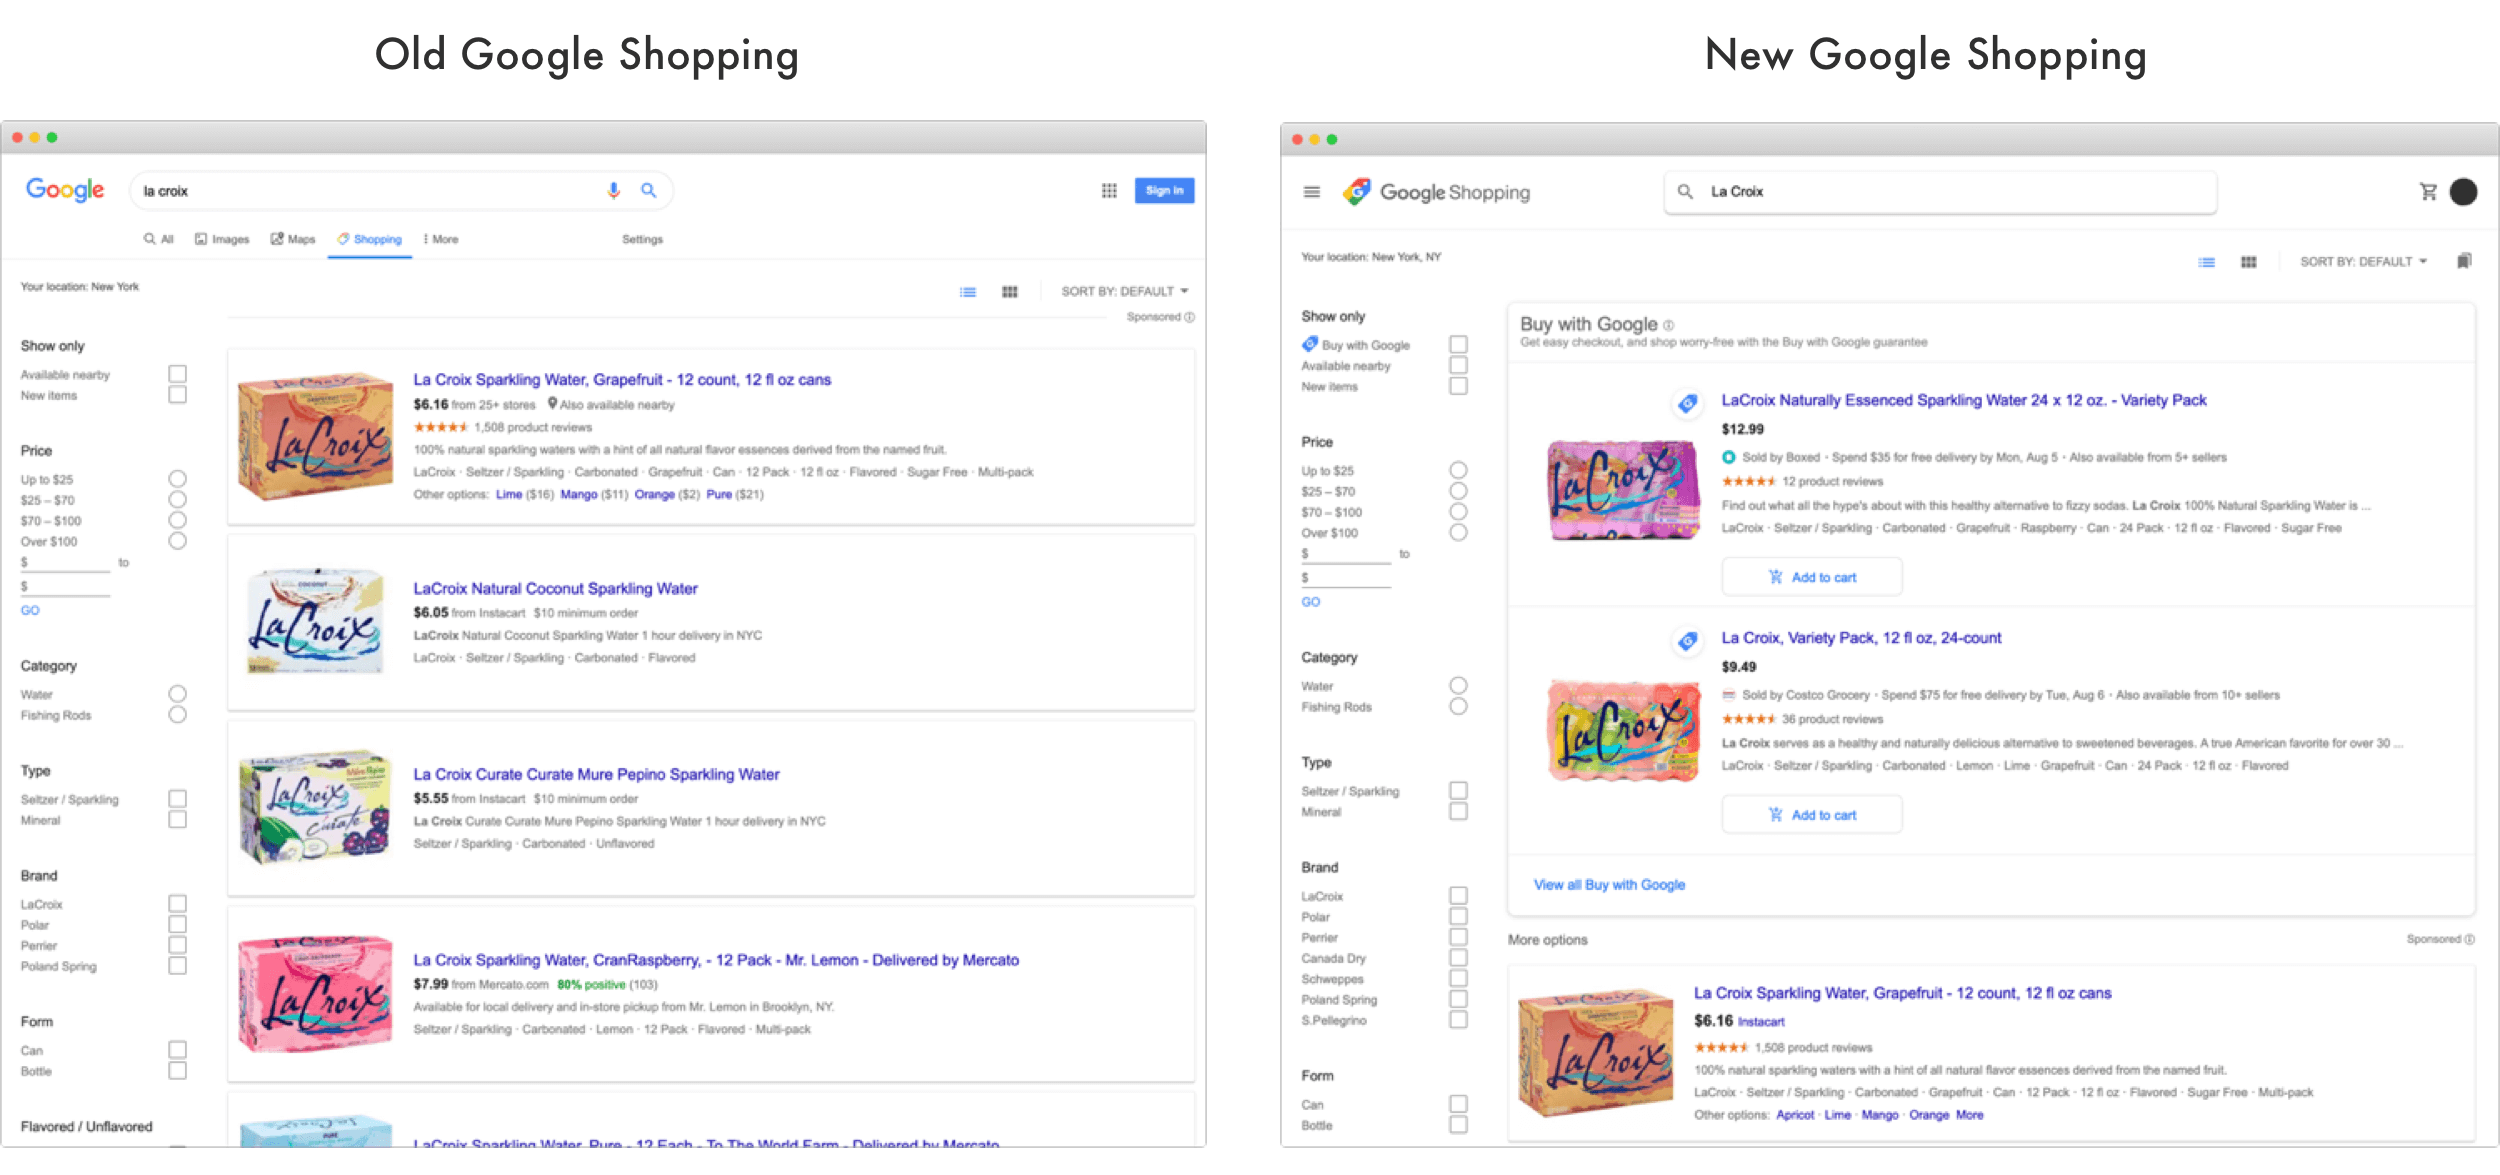 Google Shopping old vs new